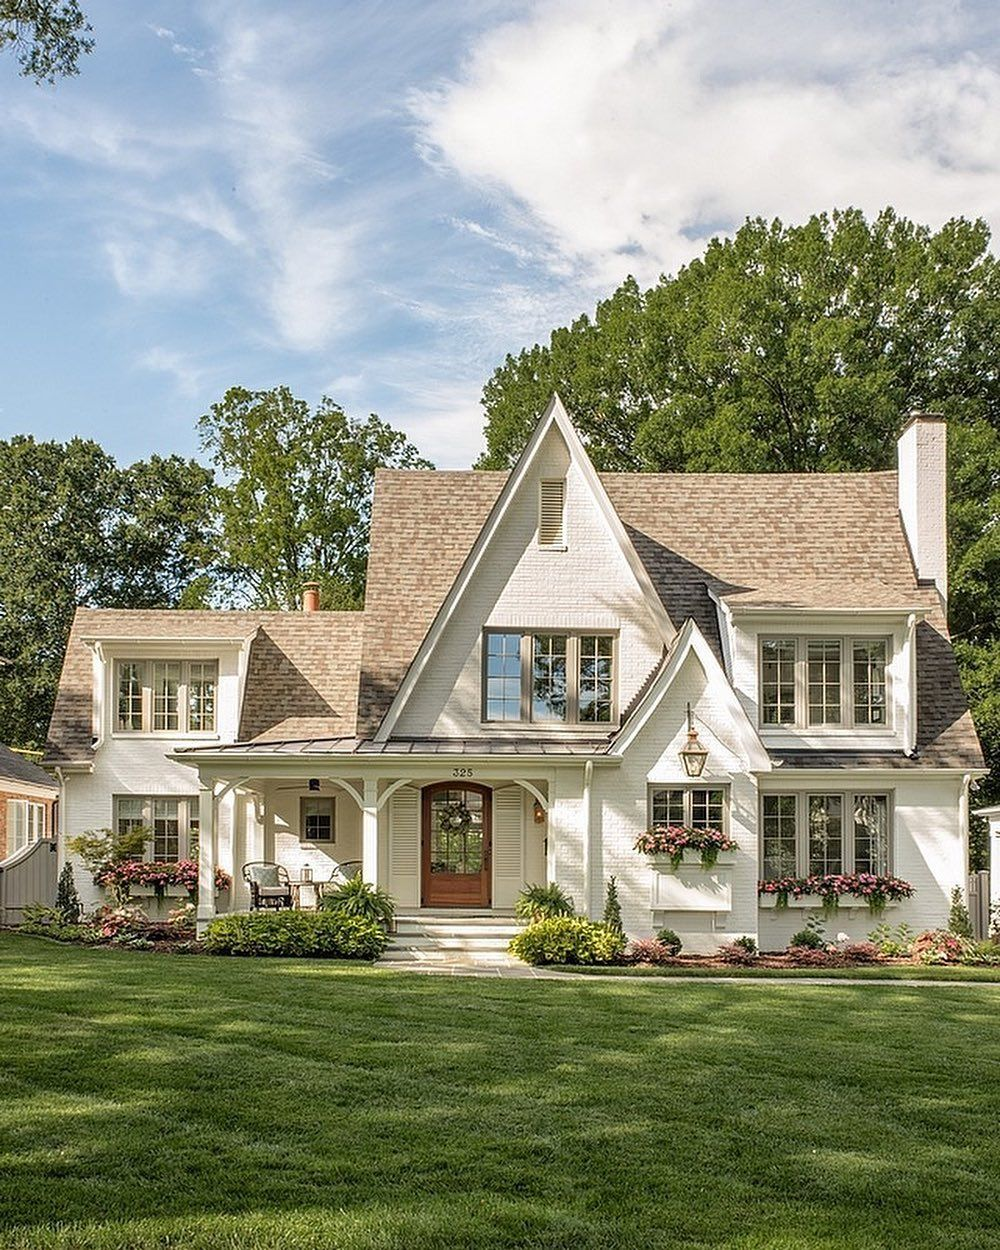 Farm House Homes On Instagram This Cottage Style Is Adorable In 2020 Brick Cottage White Brick Houses Dream House Exterior